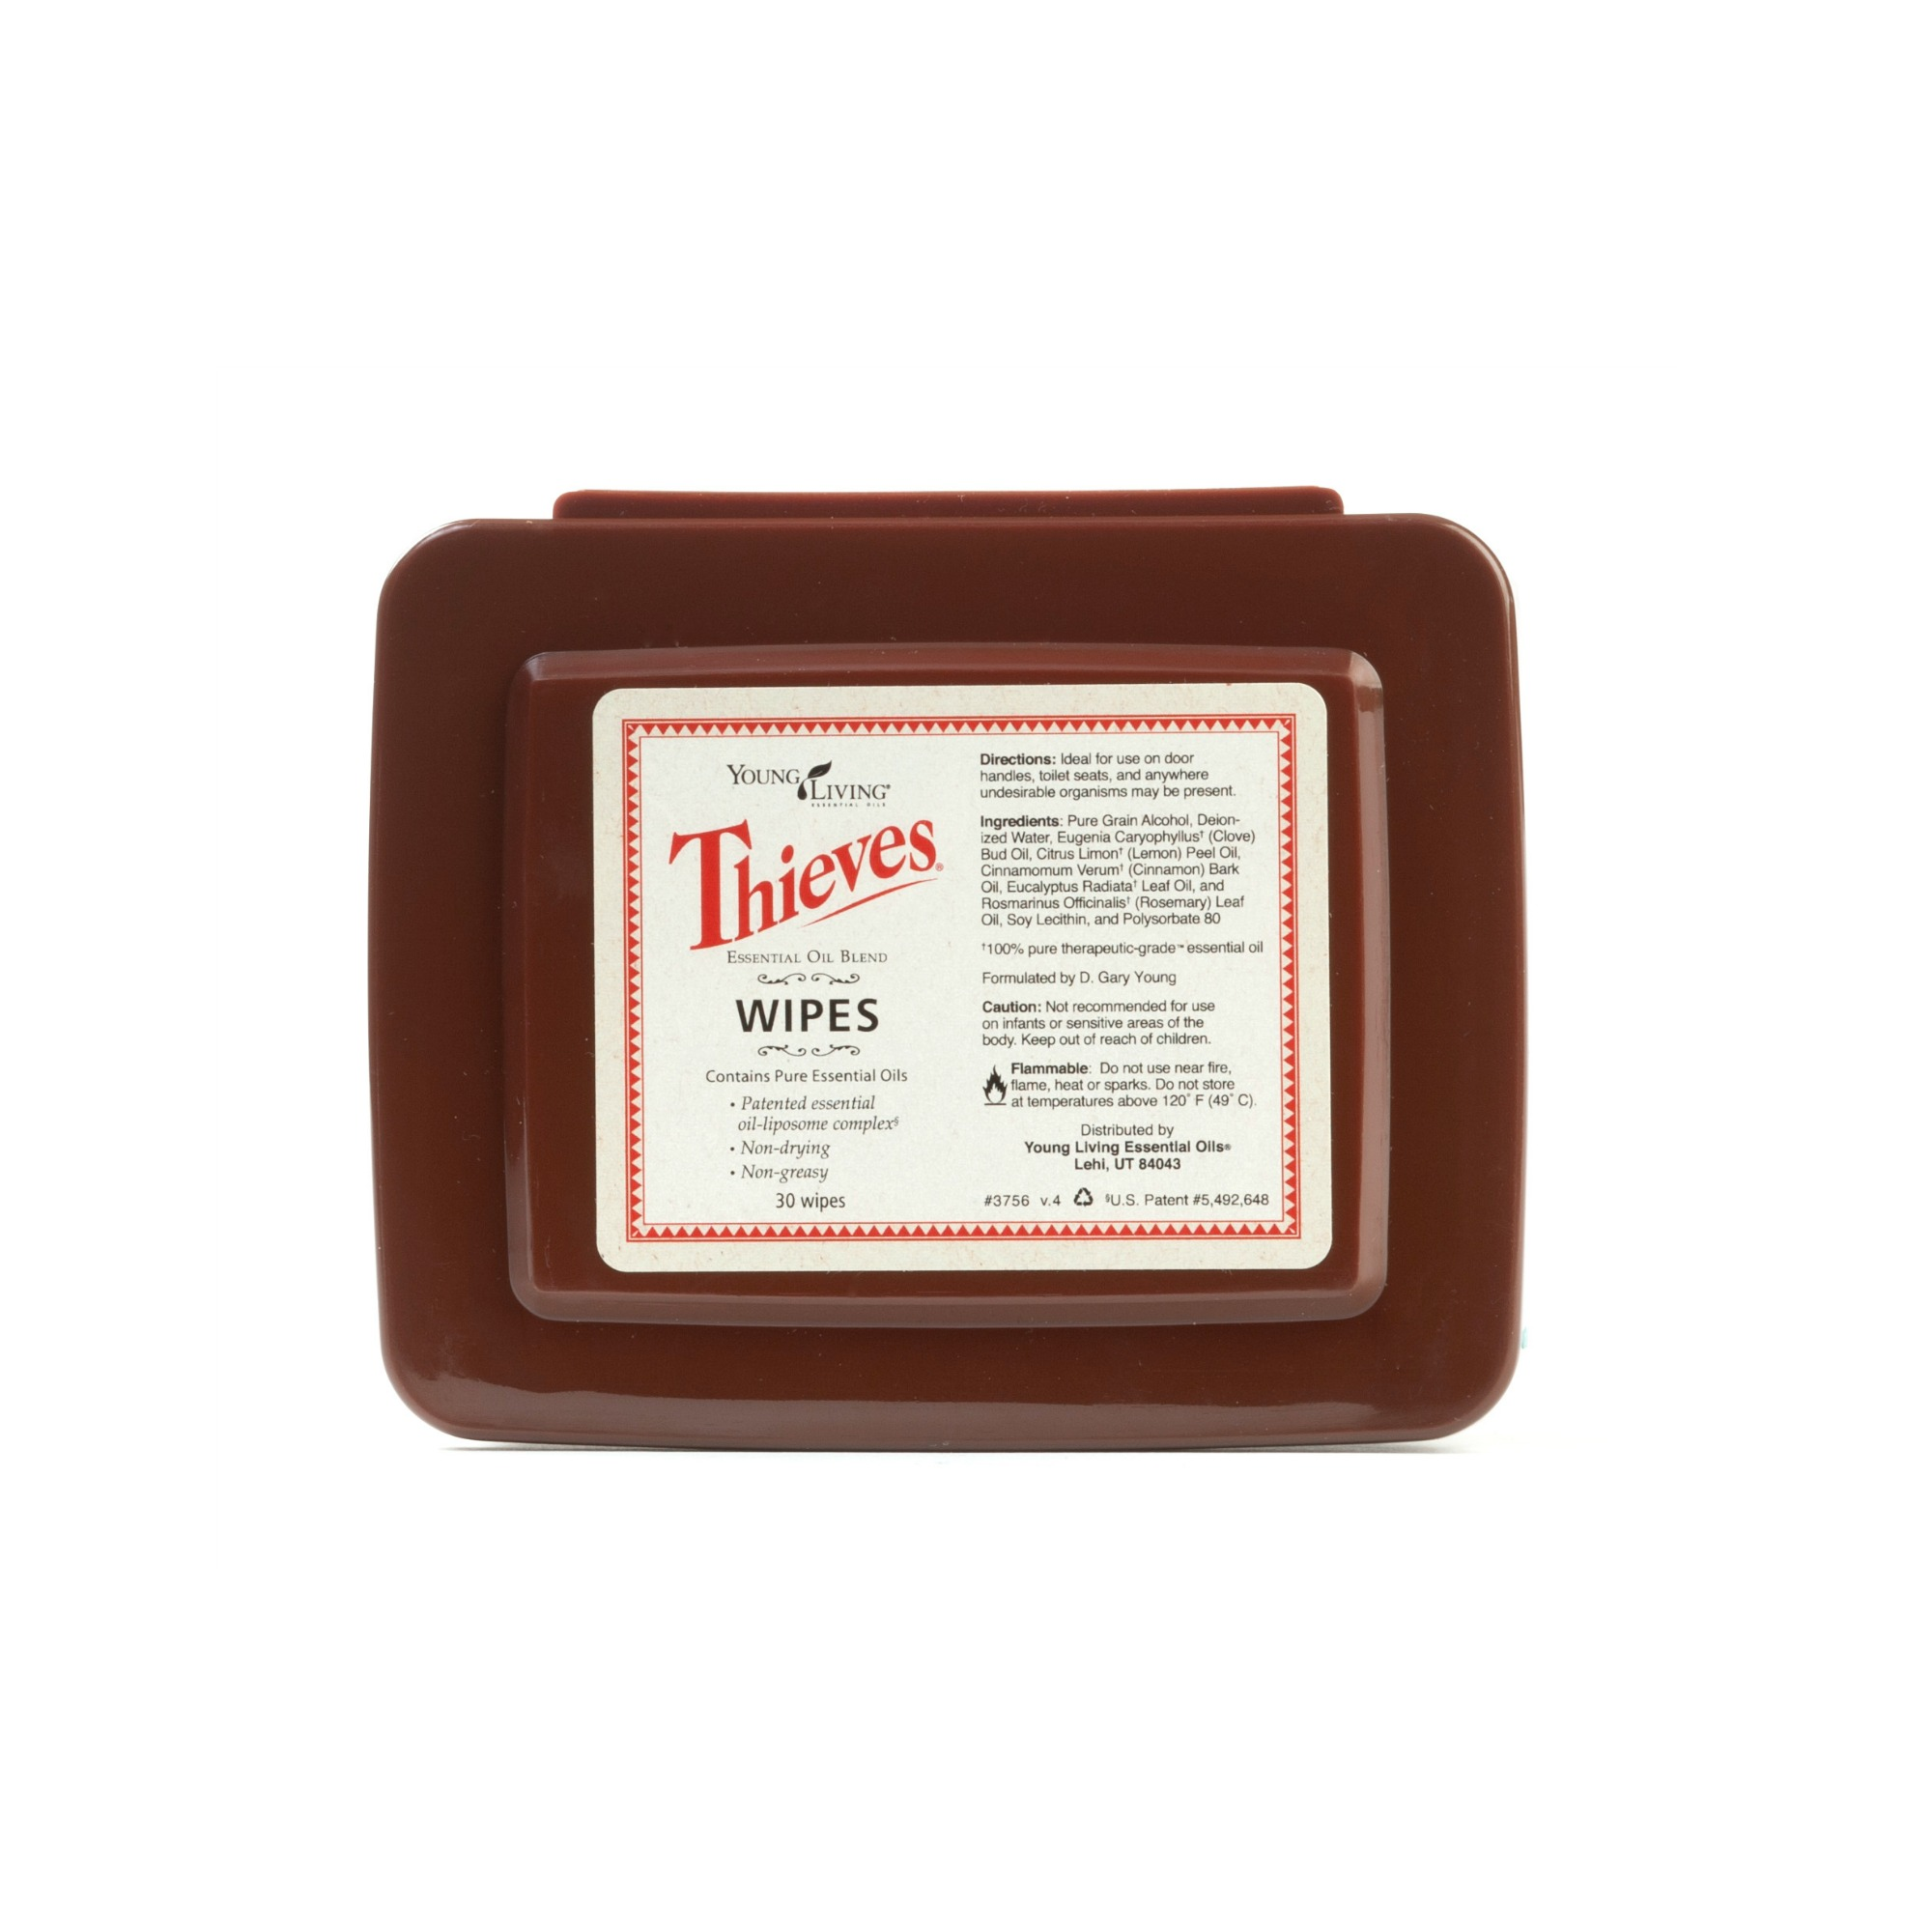 THIEVES WIPES    This portable container filled with Thieves-soaked wipes is extremely convenient to take with you on the go. Wipe down outdoor surfaces or supplies, and keep your hands clean while exploring nature.   Click here   to read more extensively on this product.